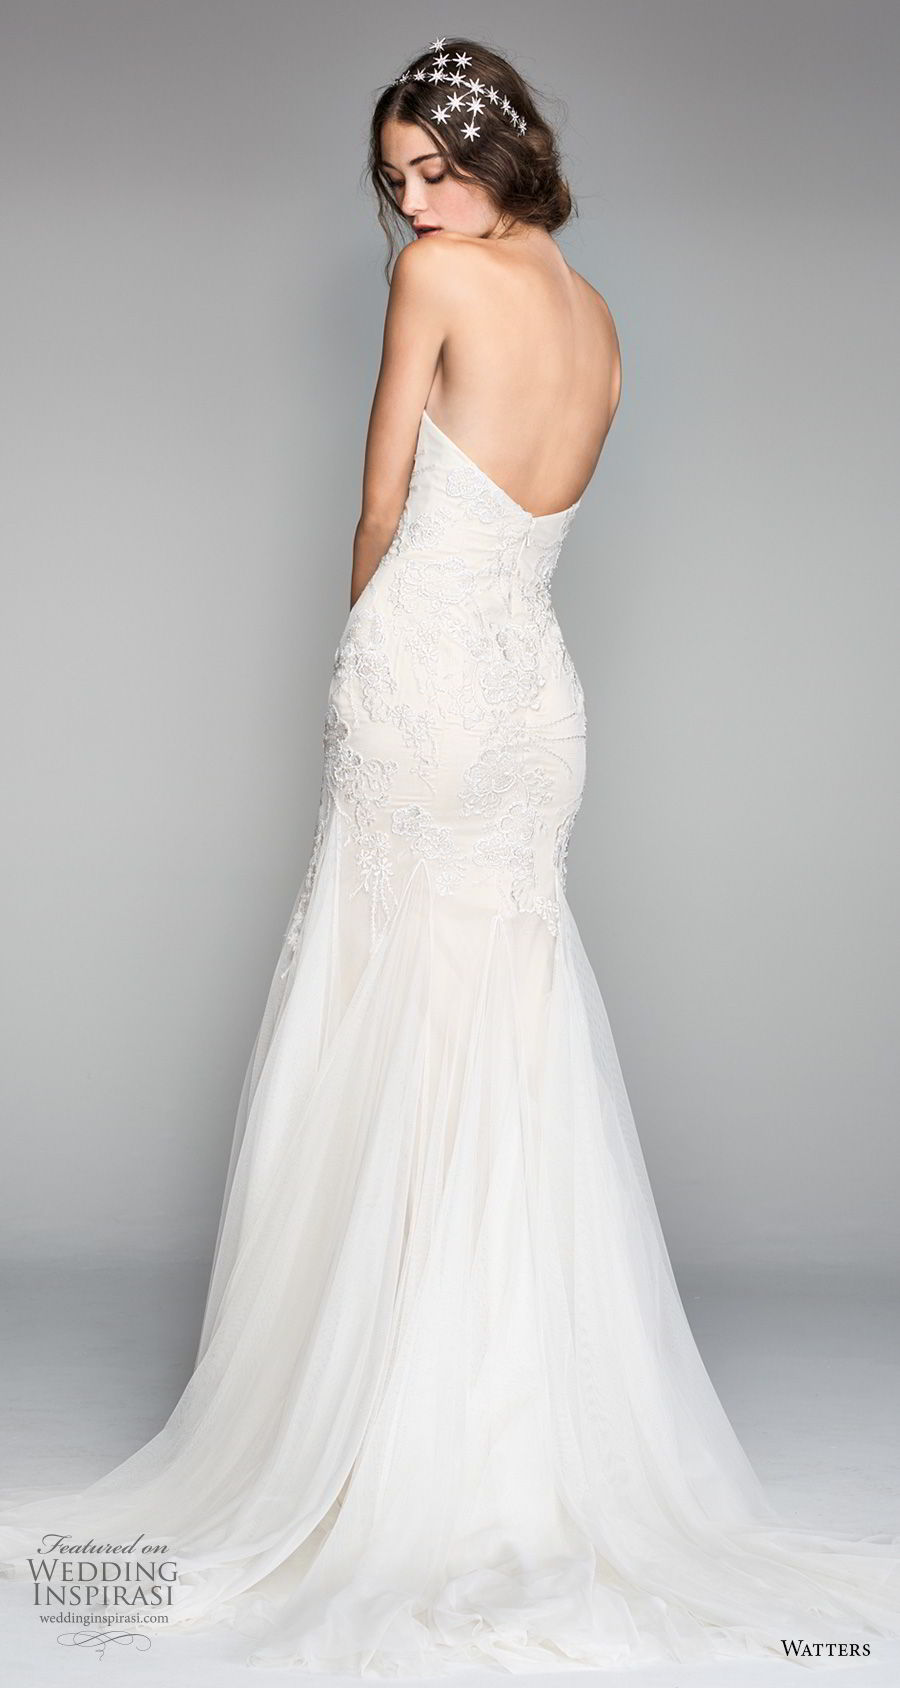 willow by watters spring 2018 strapless sweetheart neckline heavily embellished bodice romantic mermaid wedding dress sweep train (16) bv